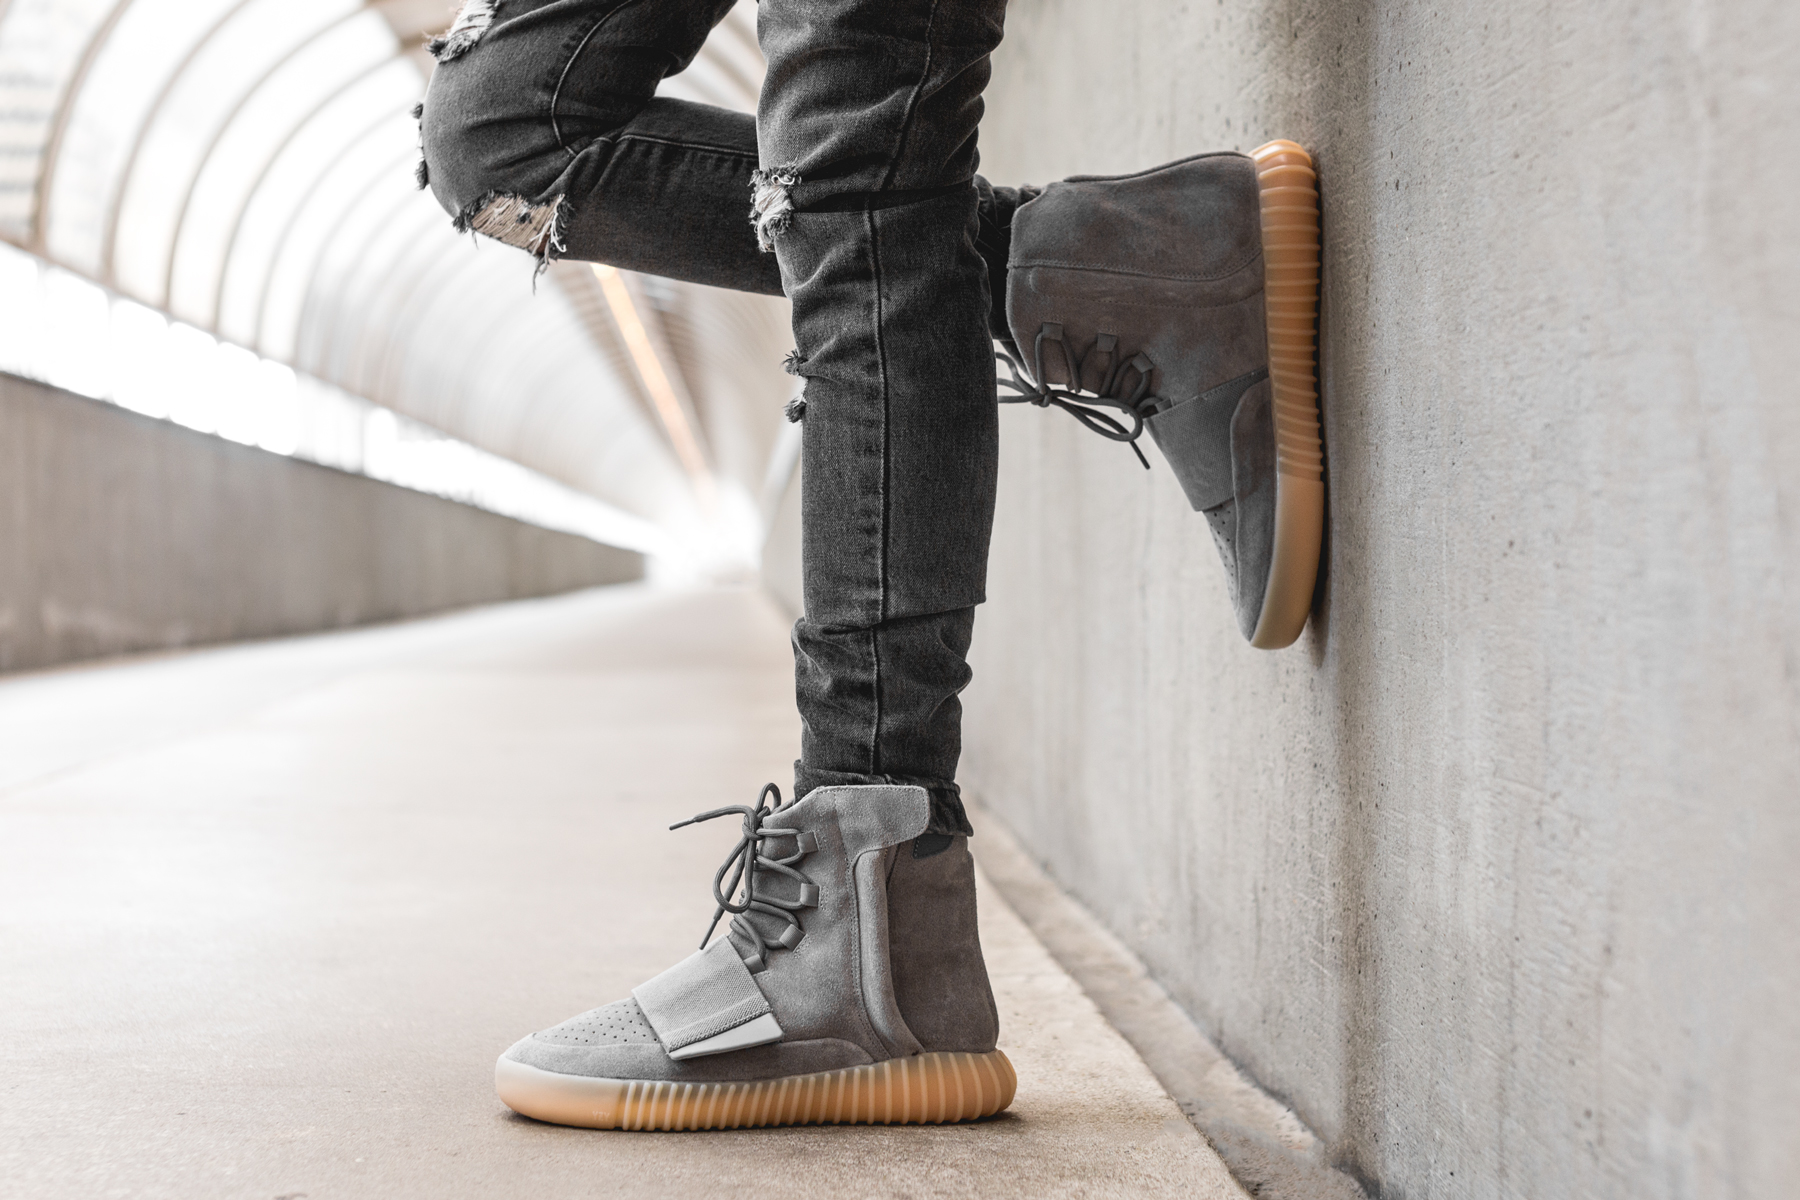 adidas-Yeezy-Boost-750-Light-Grey-Gum-2